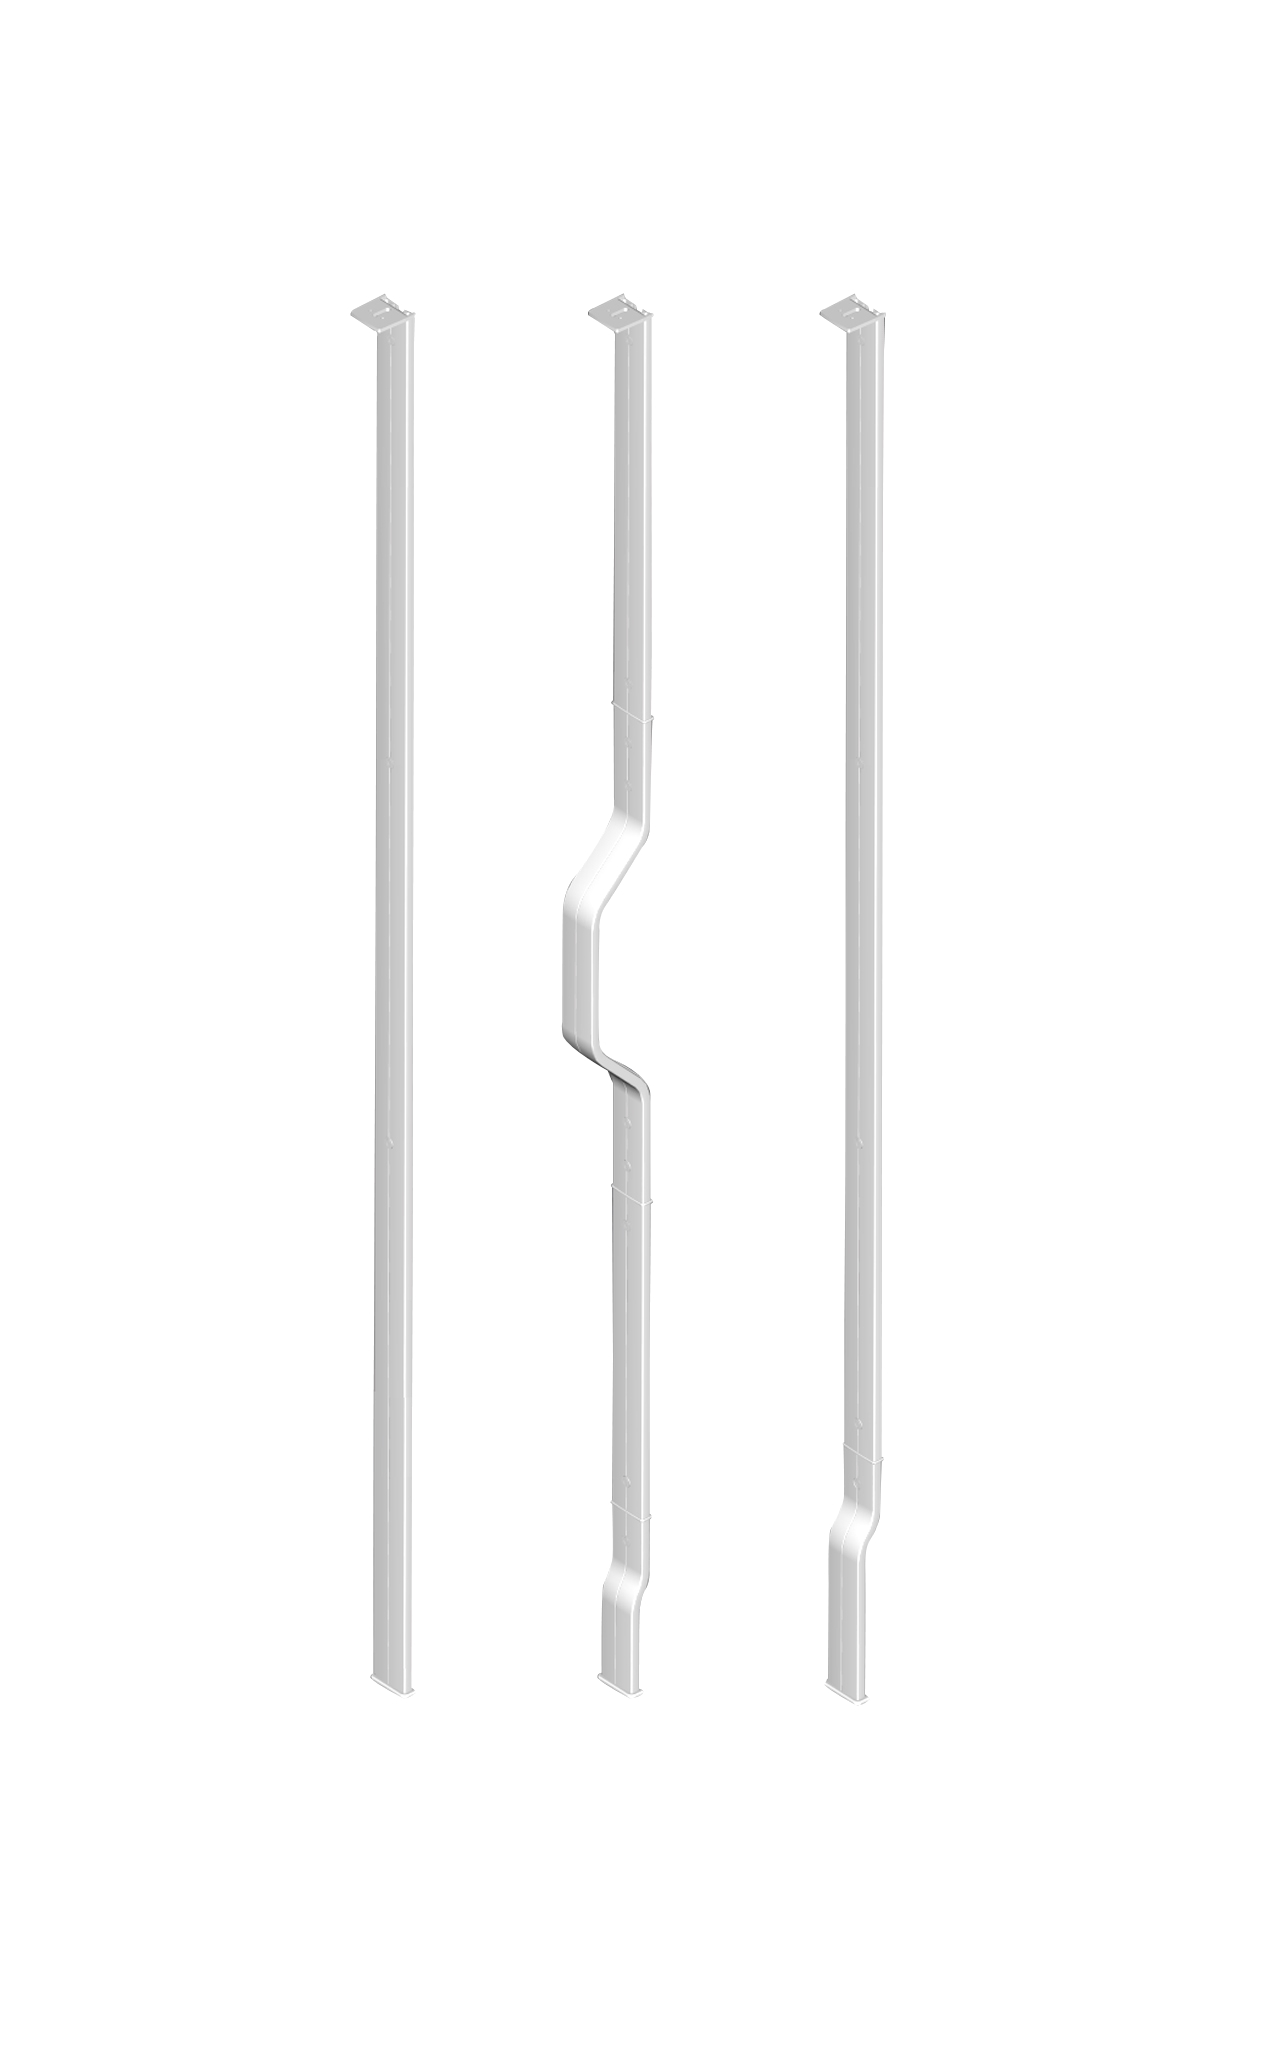 Upright support bracket – for rooms where rails cannot be secured to the walls or ceiling